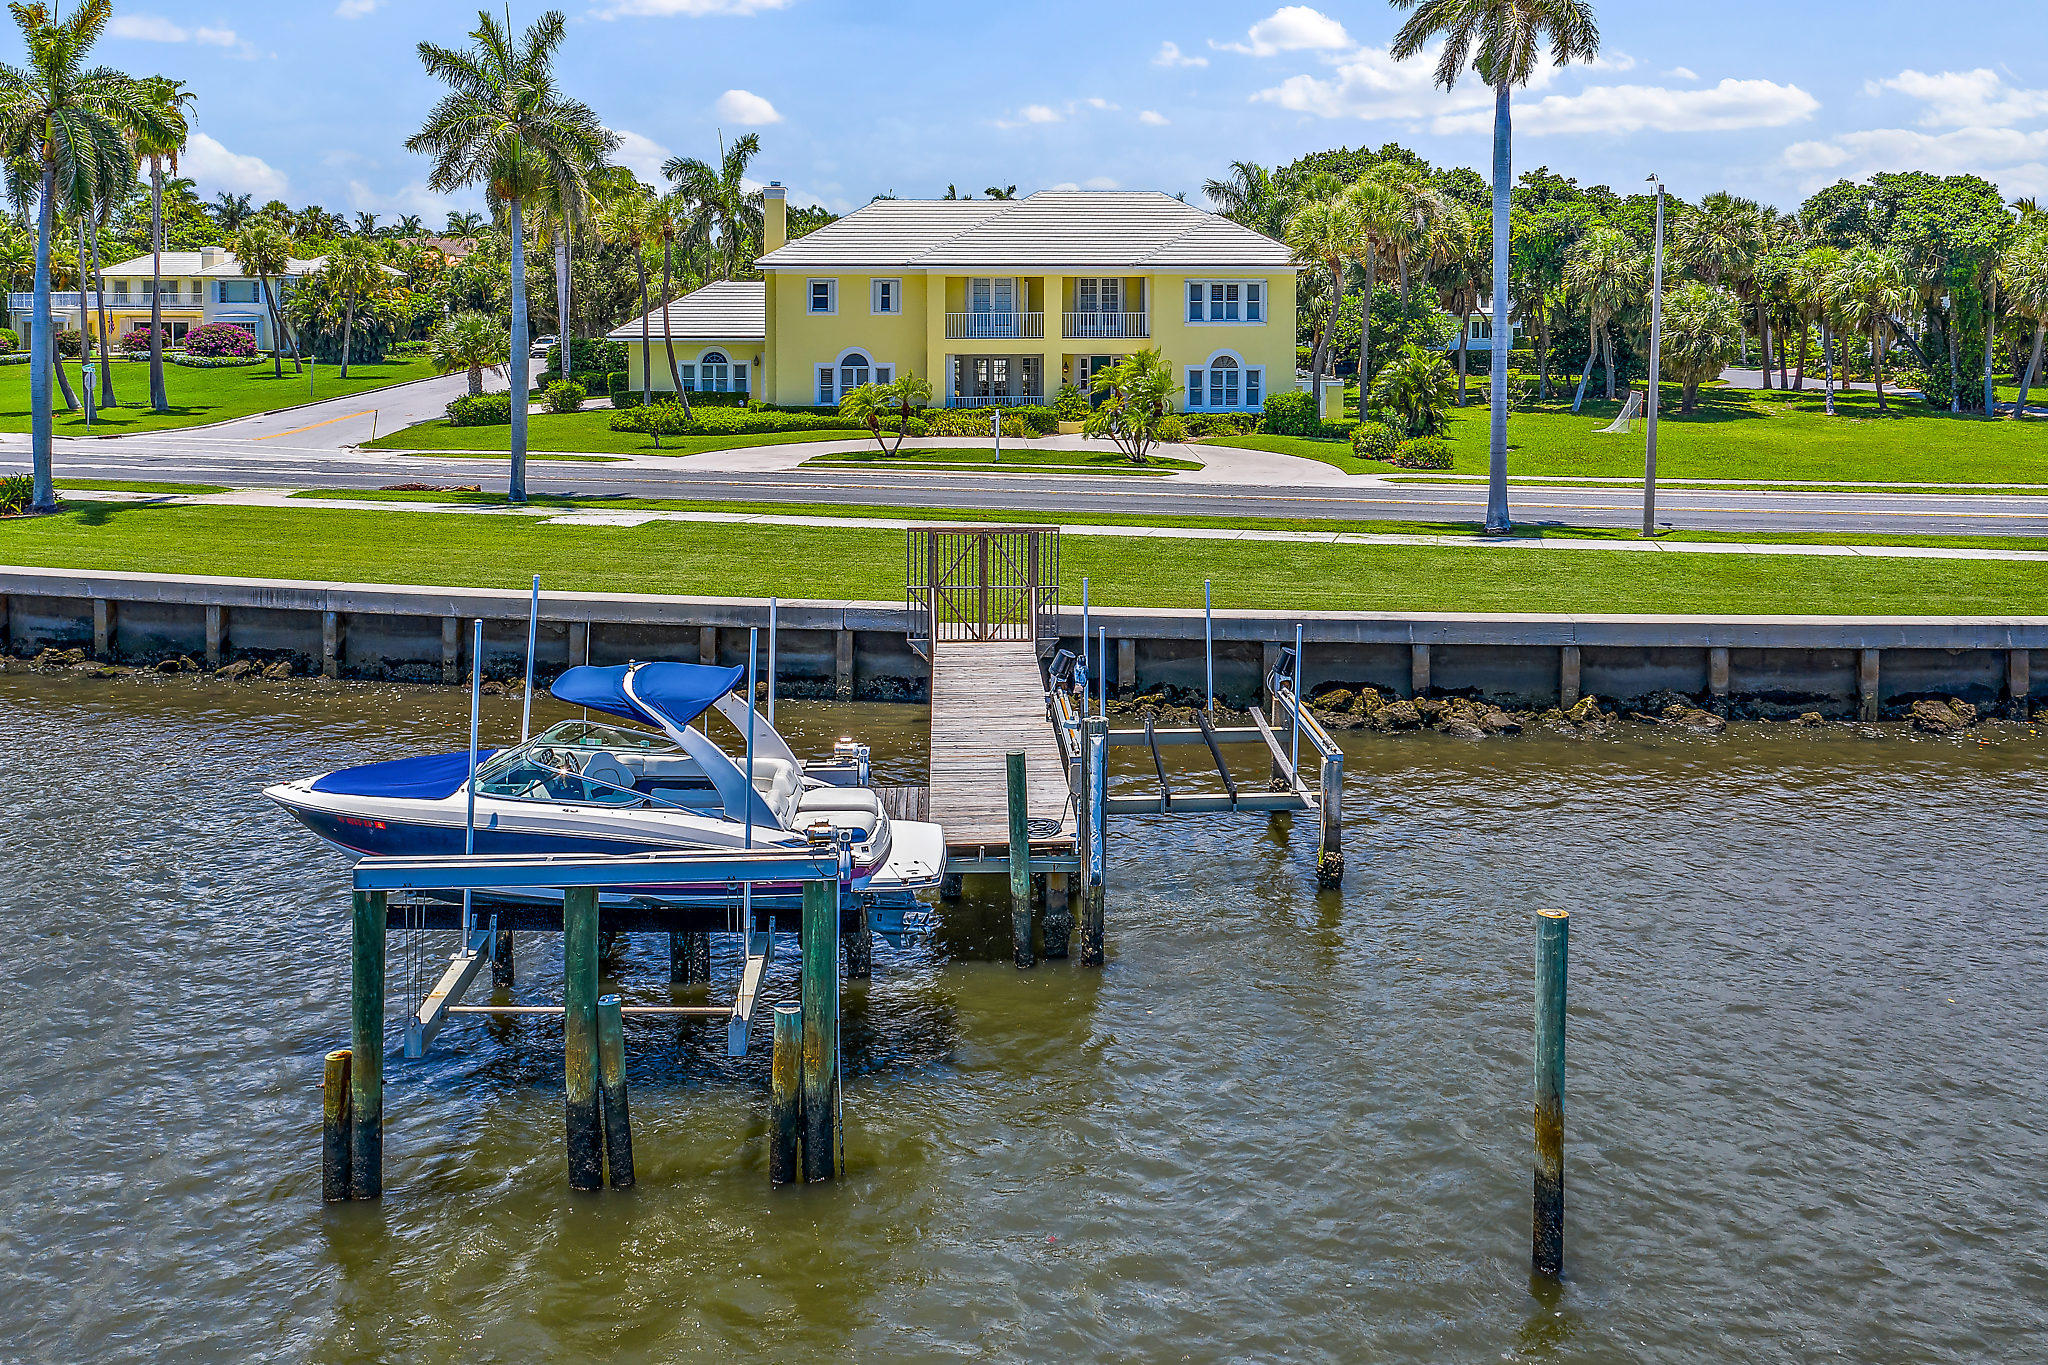 4717 Flagler Drive, West Palm Beach, Florida 33405, 5 Bedrooms Bedrooms, ,4.1 BathroomsBathrooms,Single Family,For Rent,Flagler,1,RX-10575206